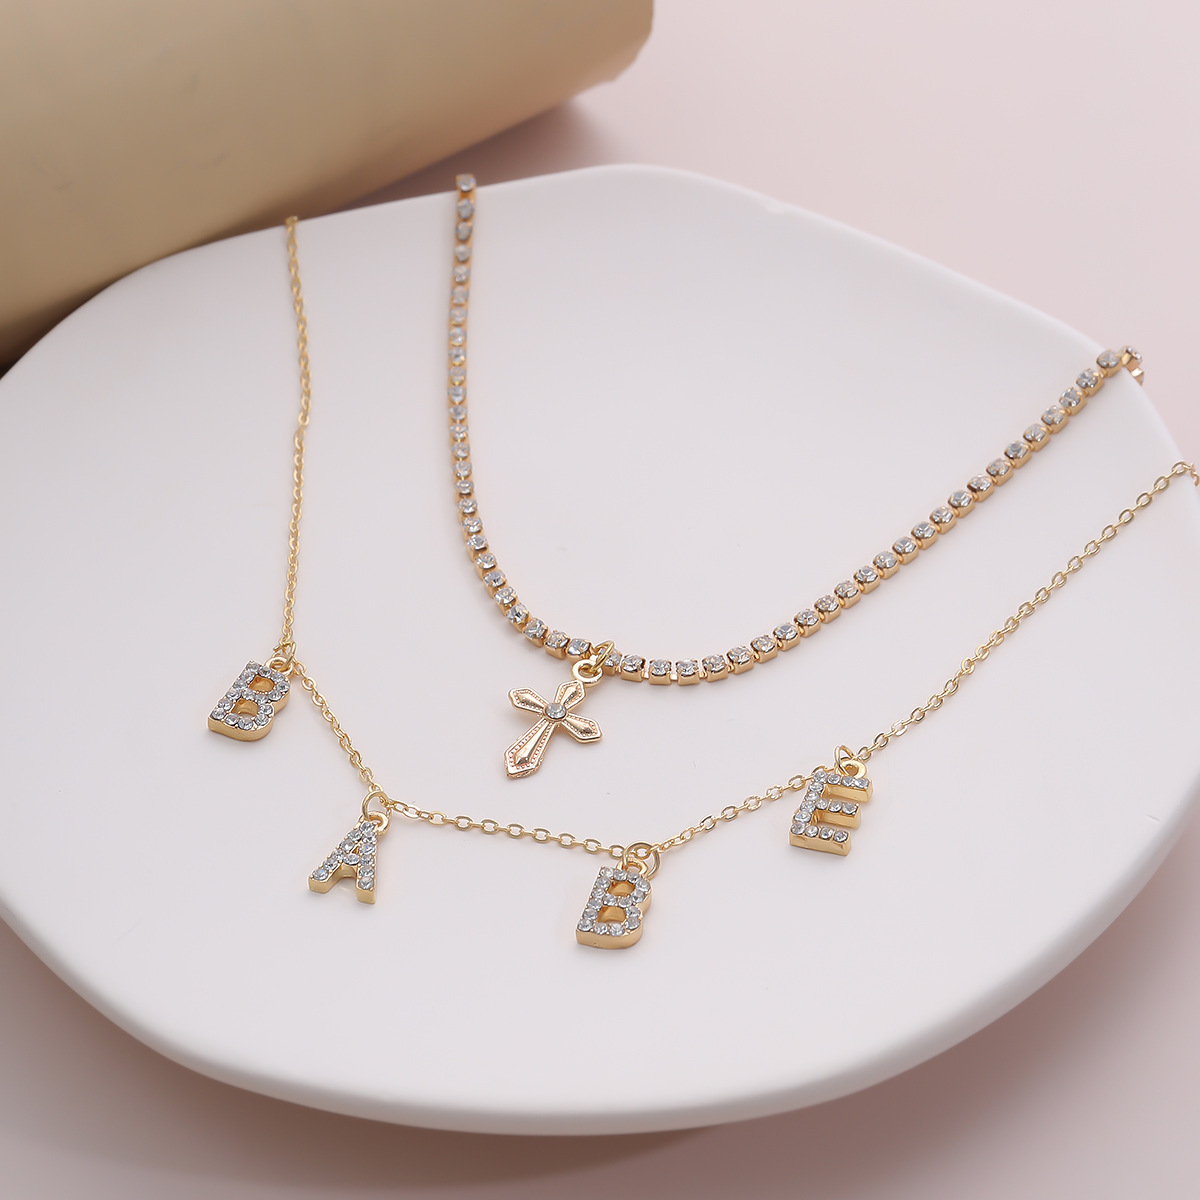 fashion jewelry cross claw chain diamond necklace micro-set handmade babe letter set necklace wholesale nihaojewelry NHXR228289